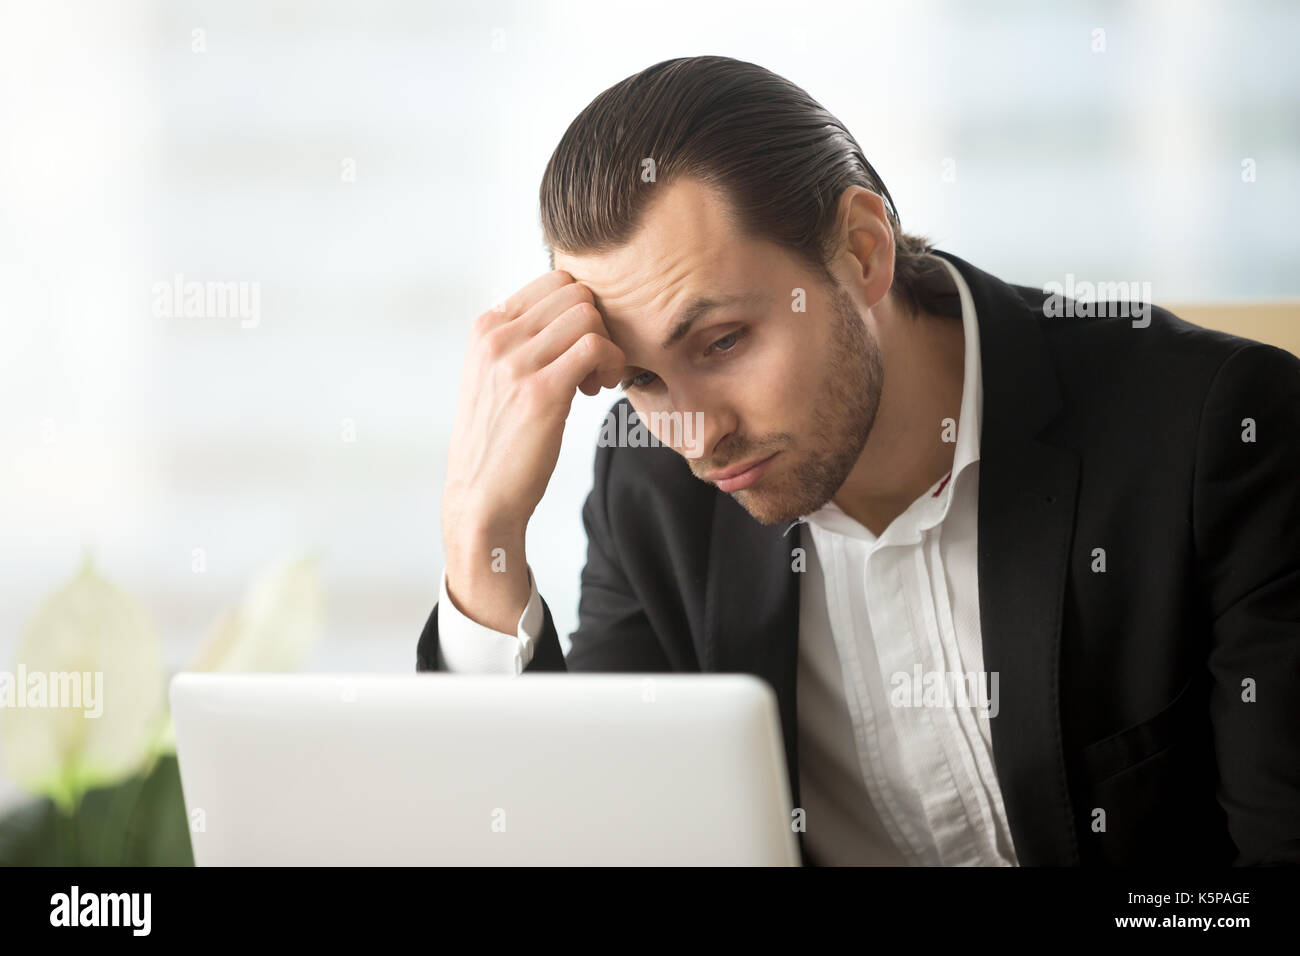 Puzzled young businessman looking at laptop screen at workplace. - Stock Image